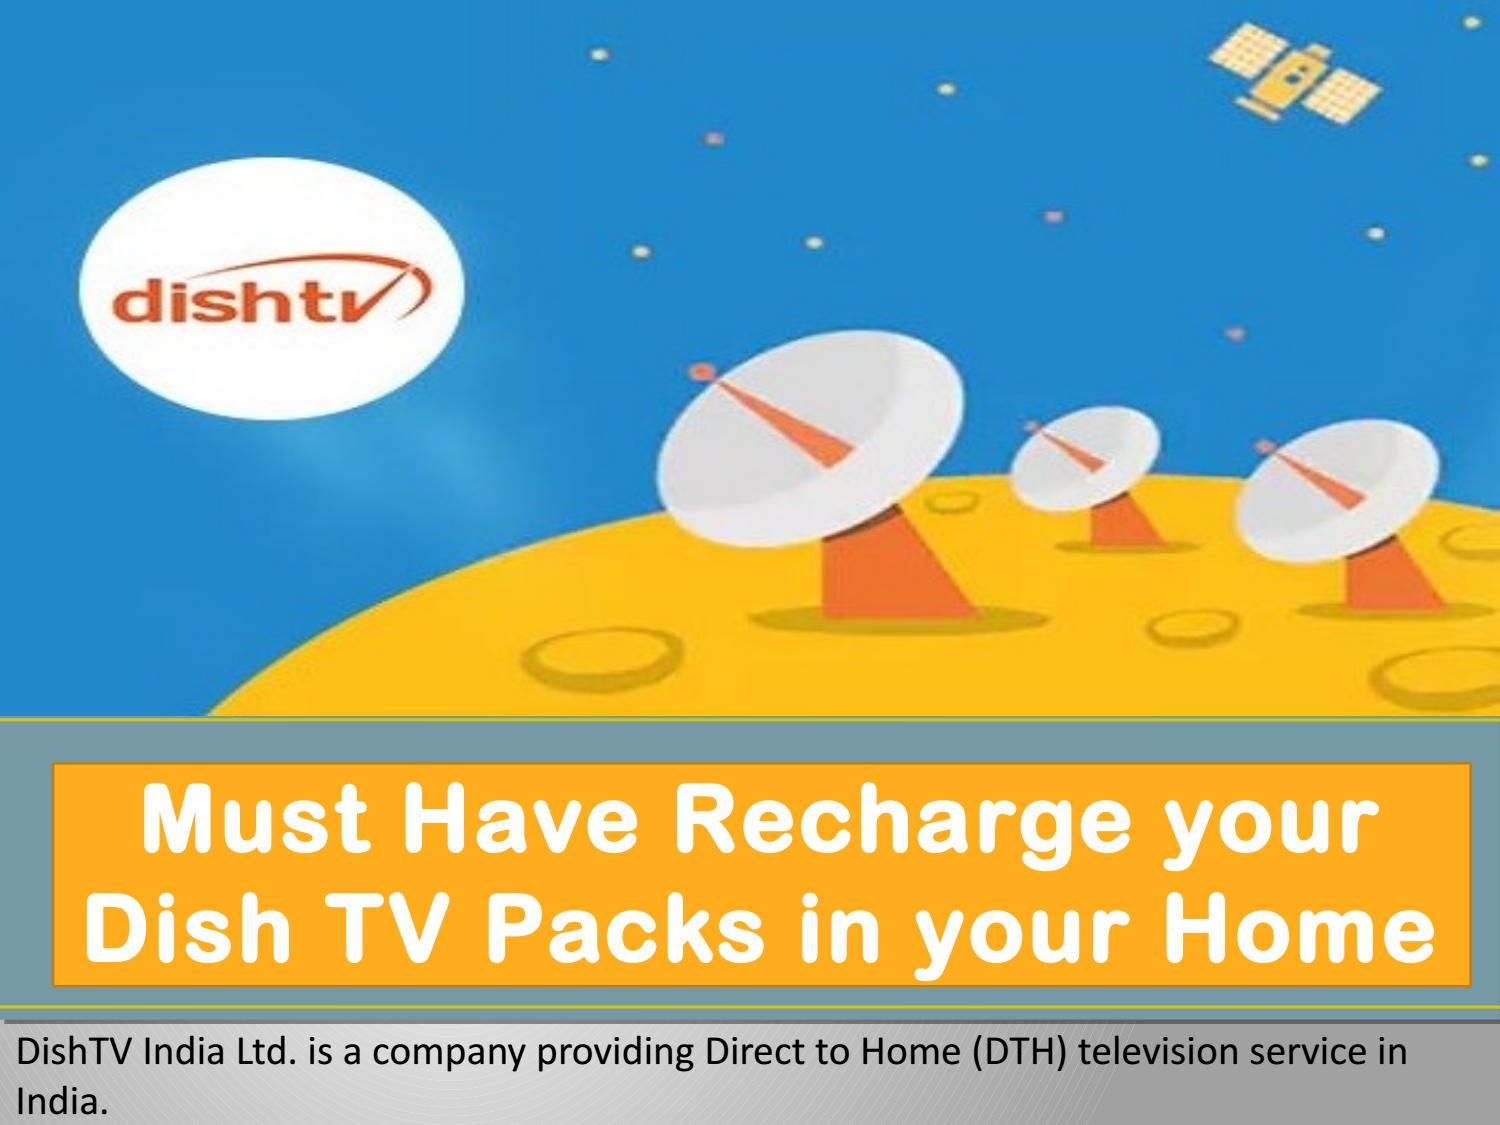 Must Have Recharge your Dish TV Packs in your Home by Ritika